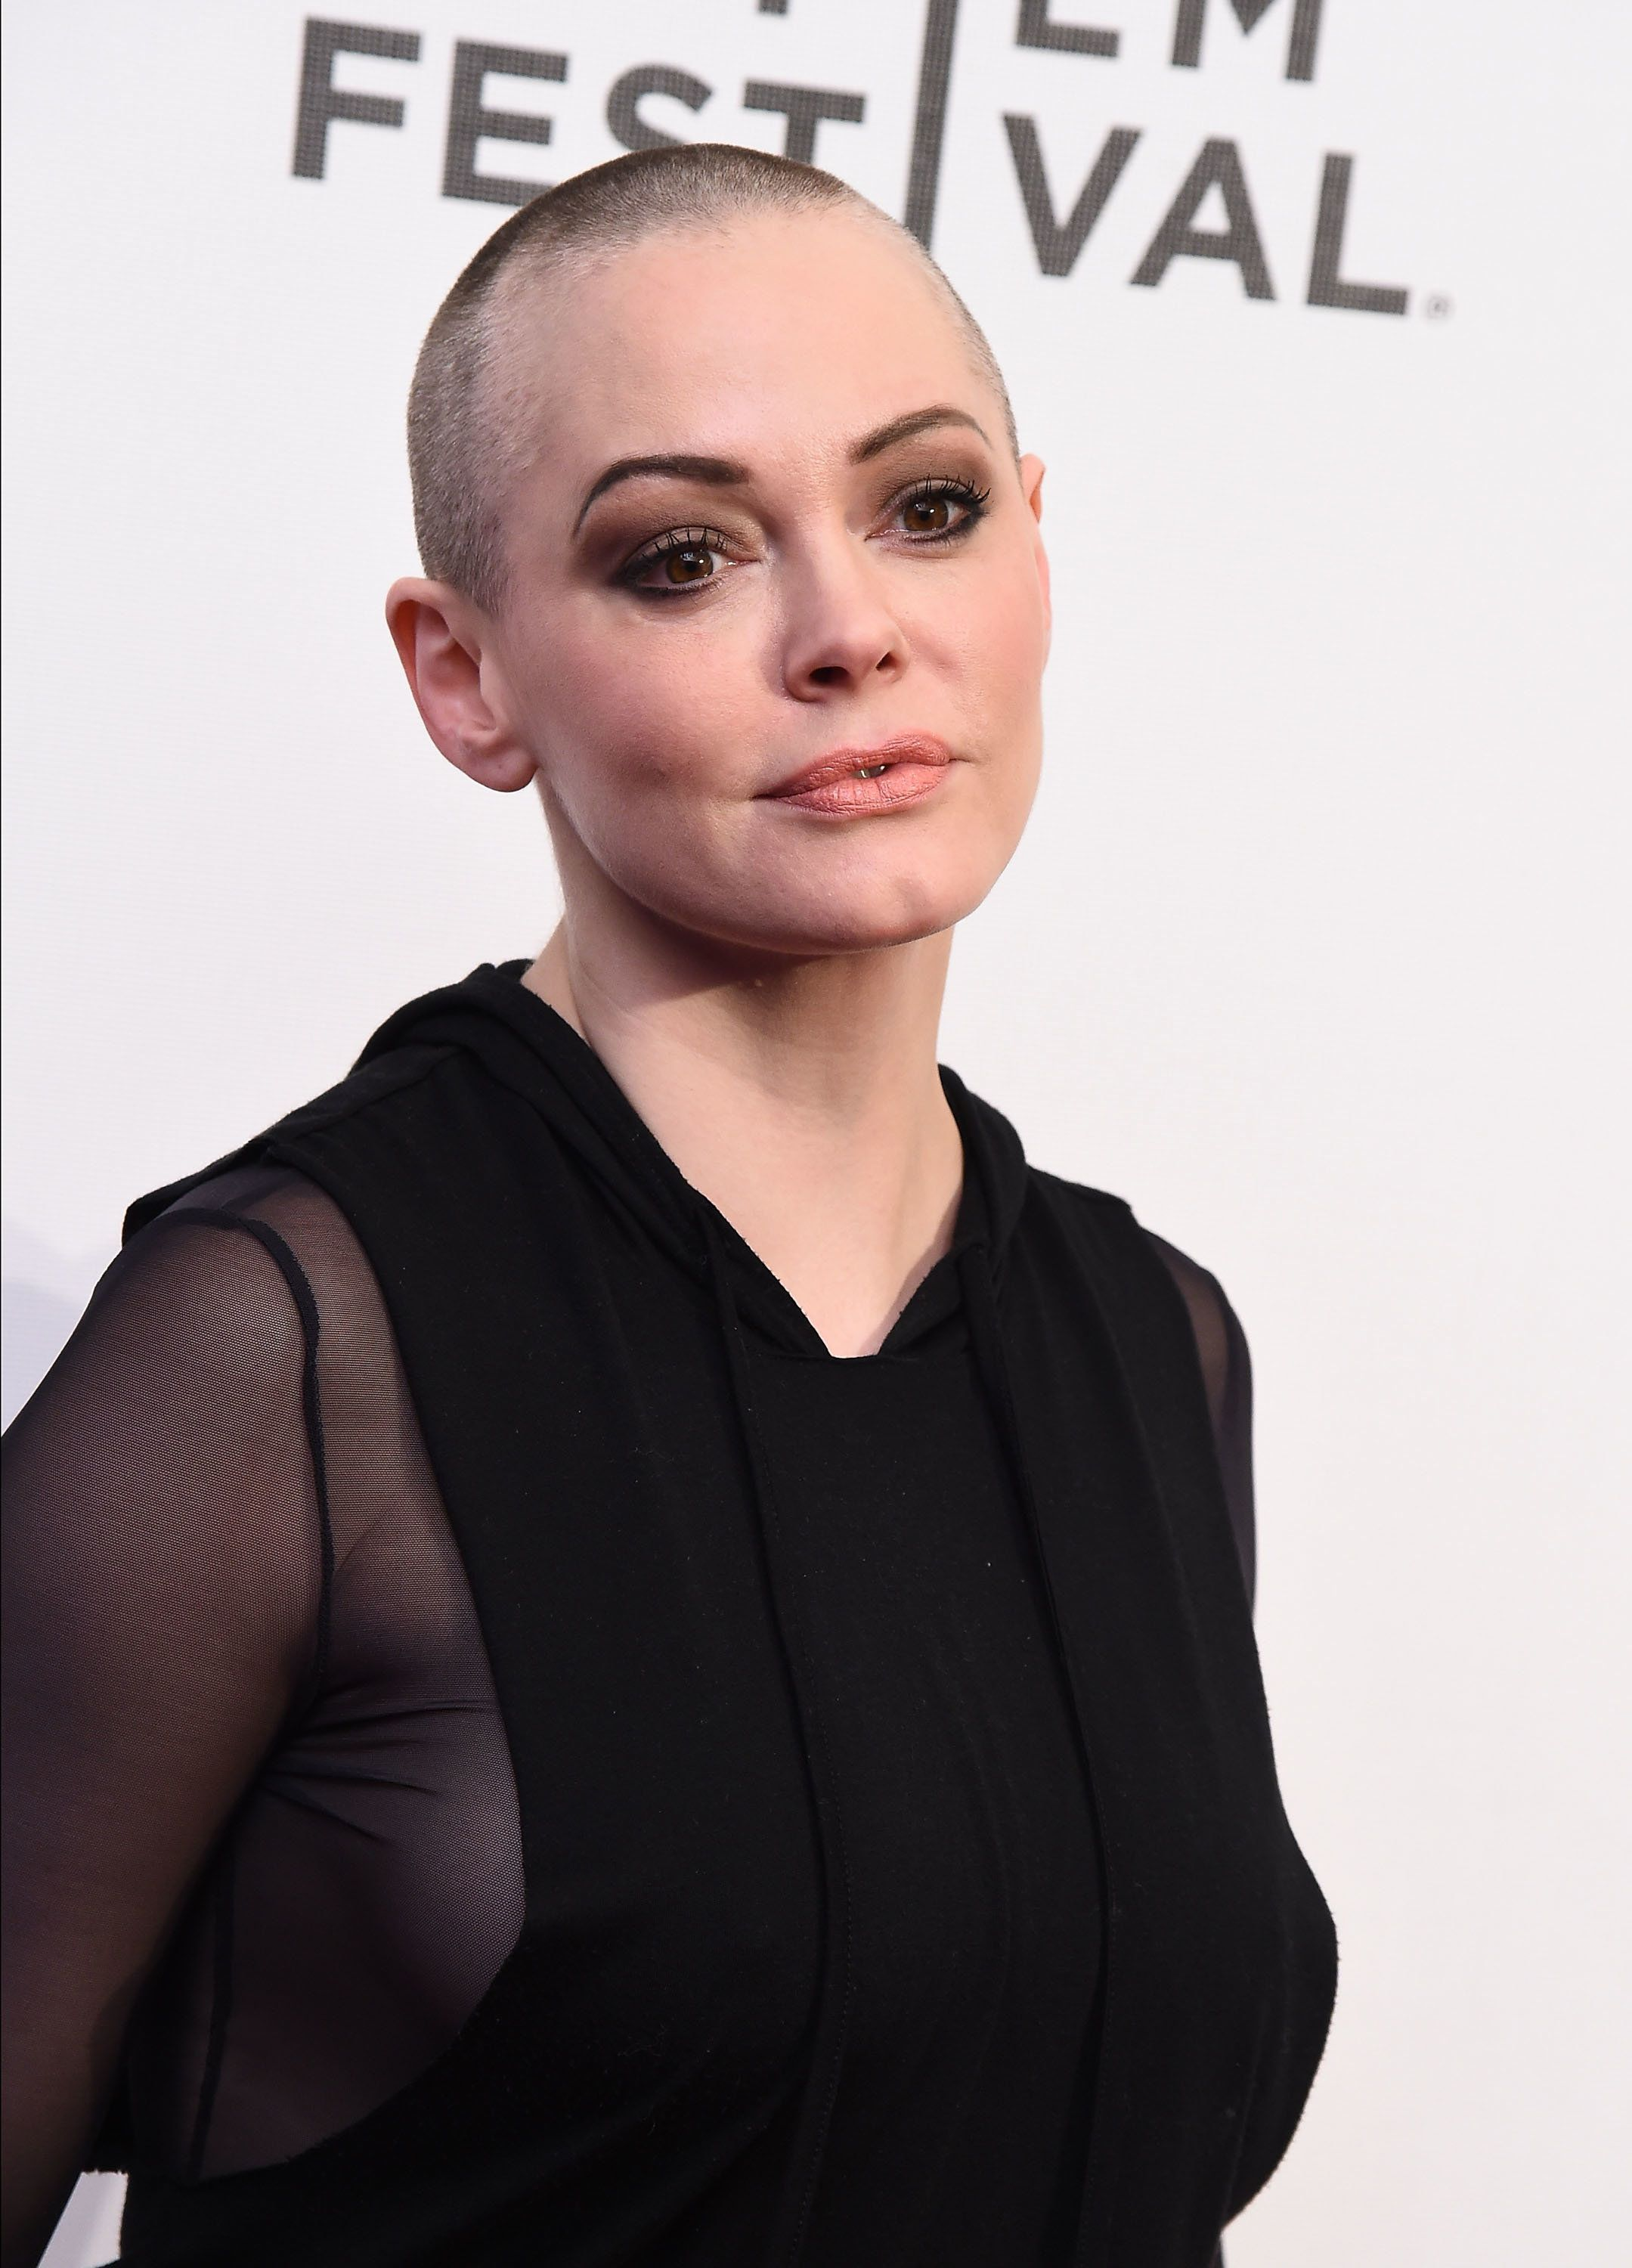 NEW YORK, NY - APRIL 22:  Actress Rose McGowan attends 'SHOT! The Psycho-Spiritual Mantra Of Rock' Screening during 2016 Tribeca Film Festival on April 22, 2016 in New York City.  (Photo by Ilya S. Savenok/Getty Images for Tribeca Film Festival)